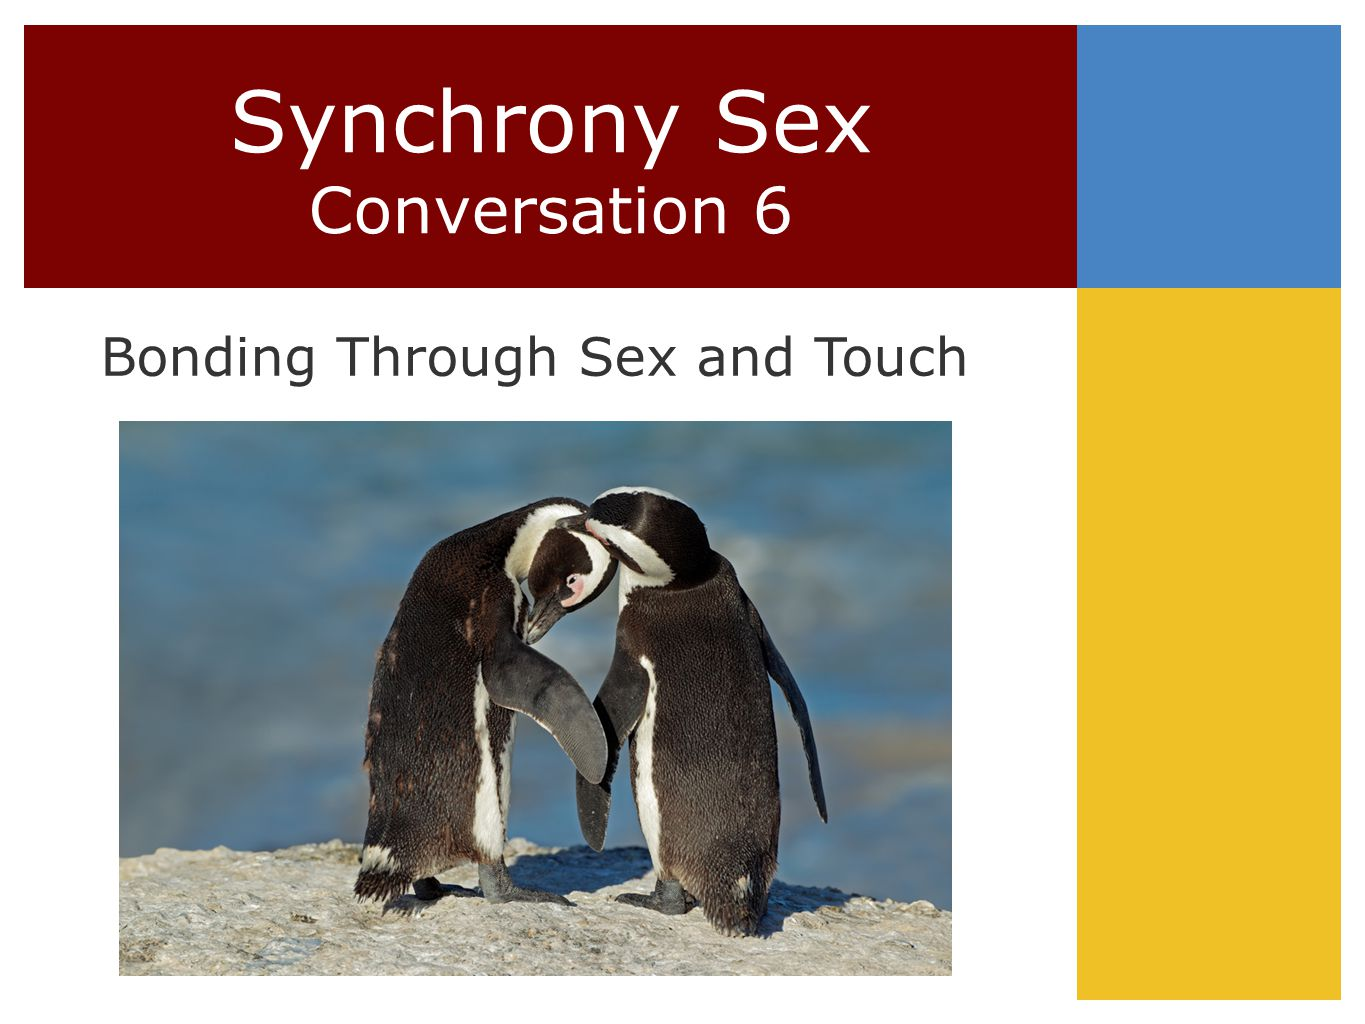 Synchrony Sex Conversation 6